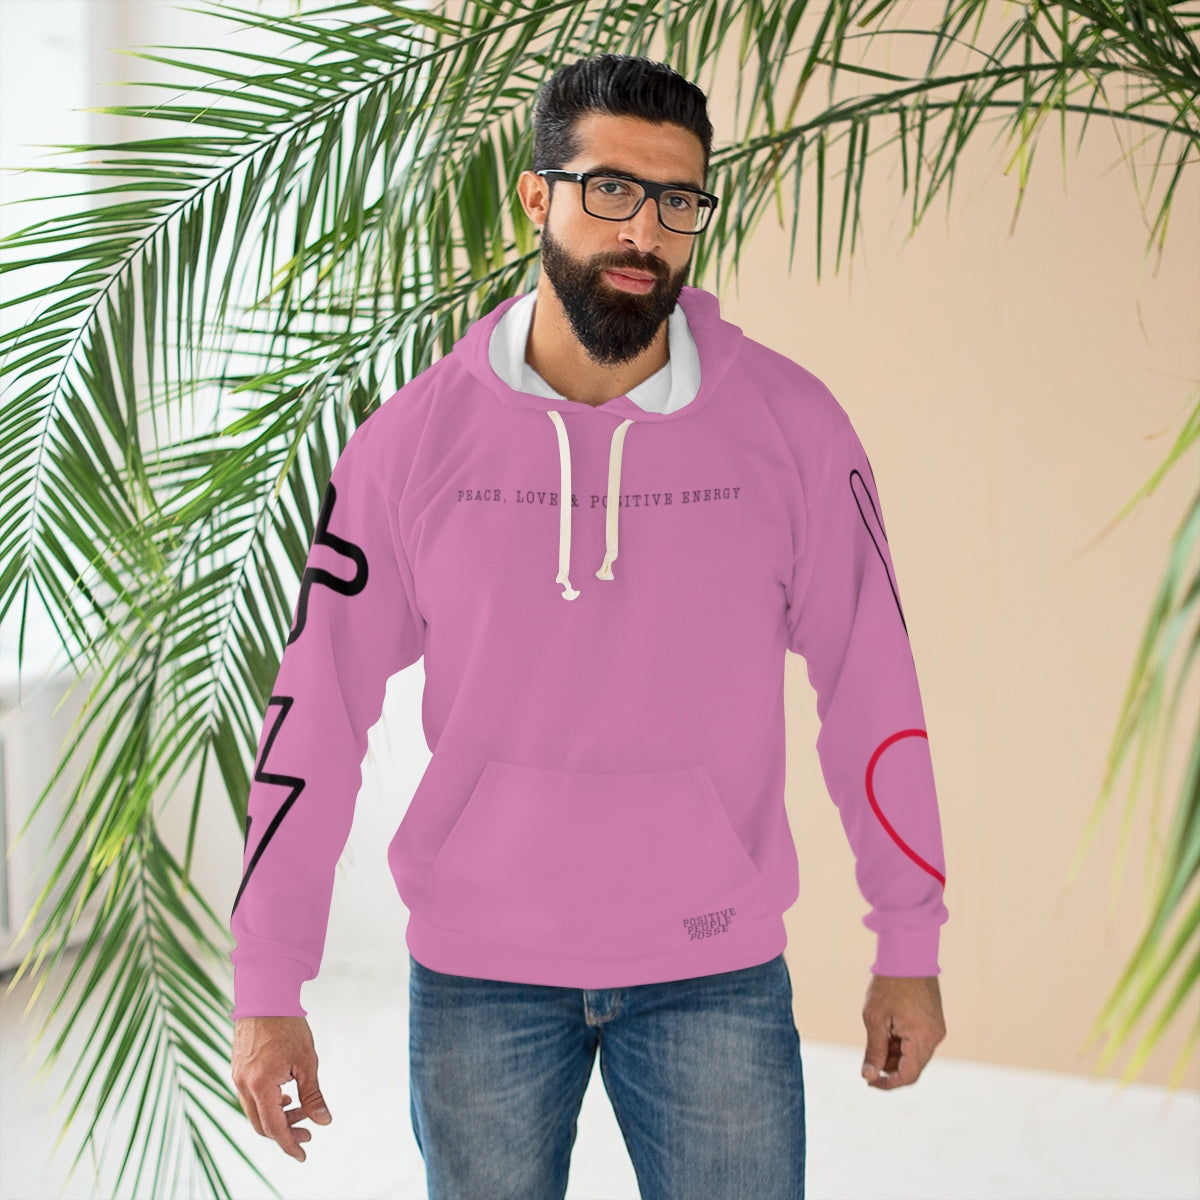 Rose Peace, Love & Positive Energy Unisex Pullover Hoodie - +Positive People Posse+